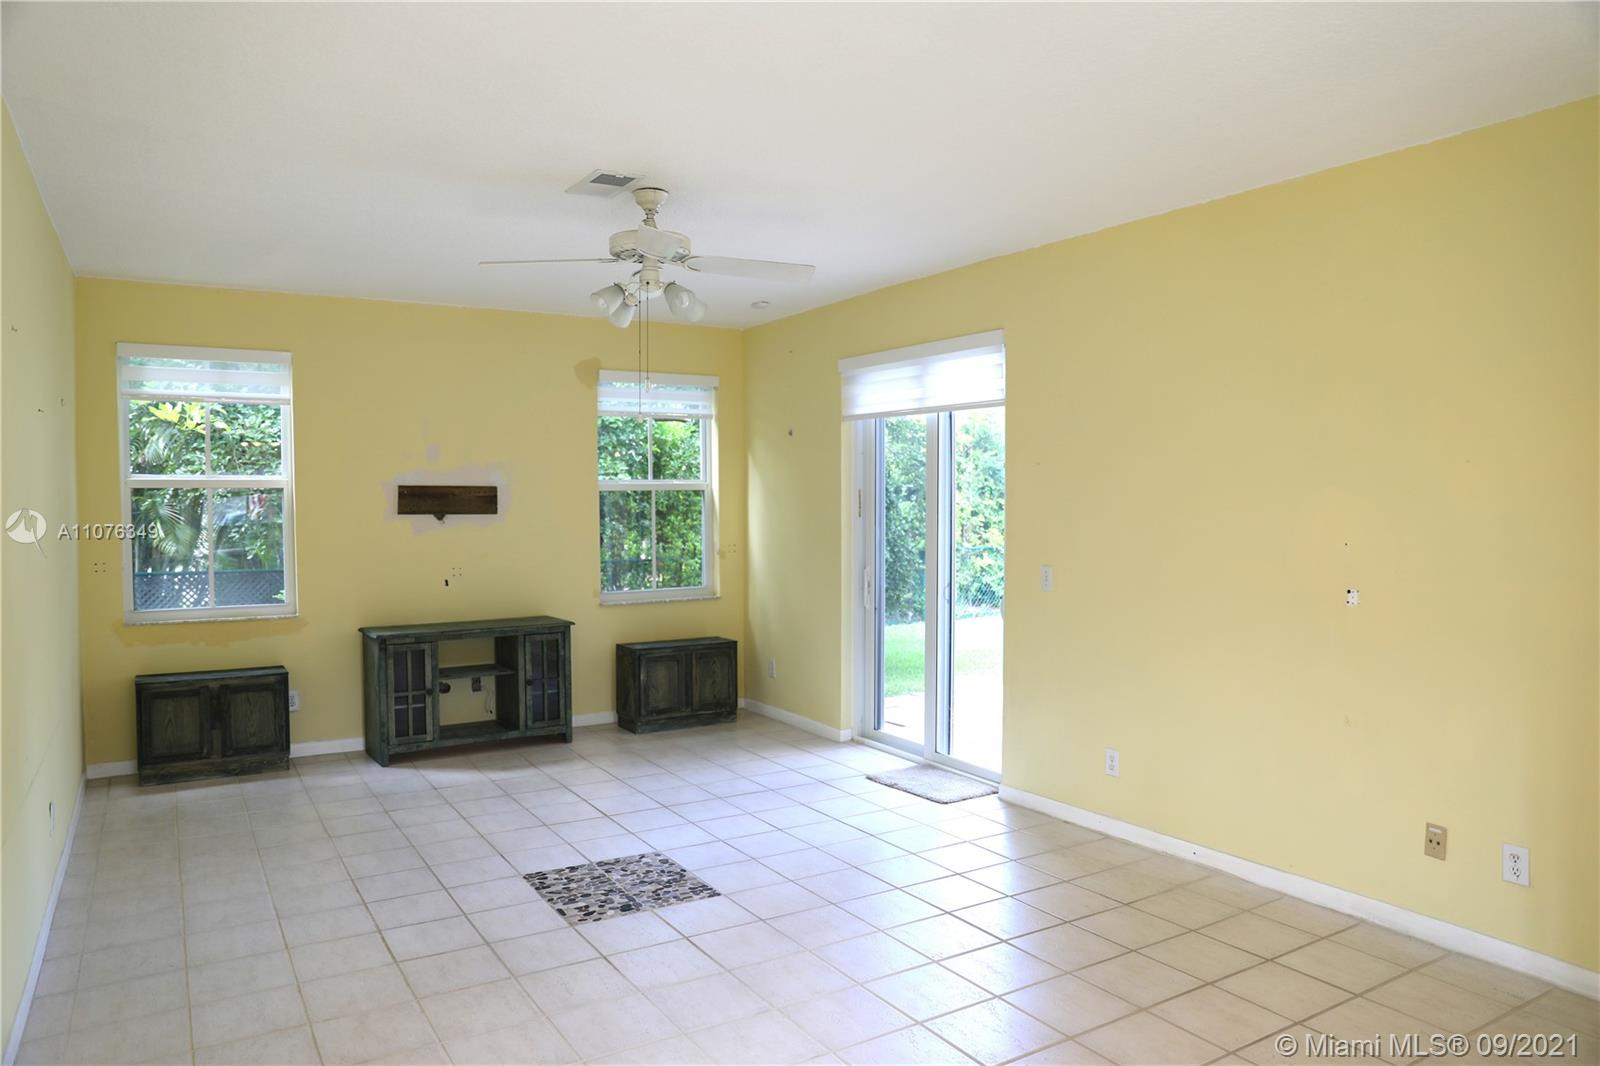 Photo of 18533 NW 18th St, Home